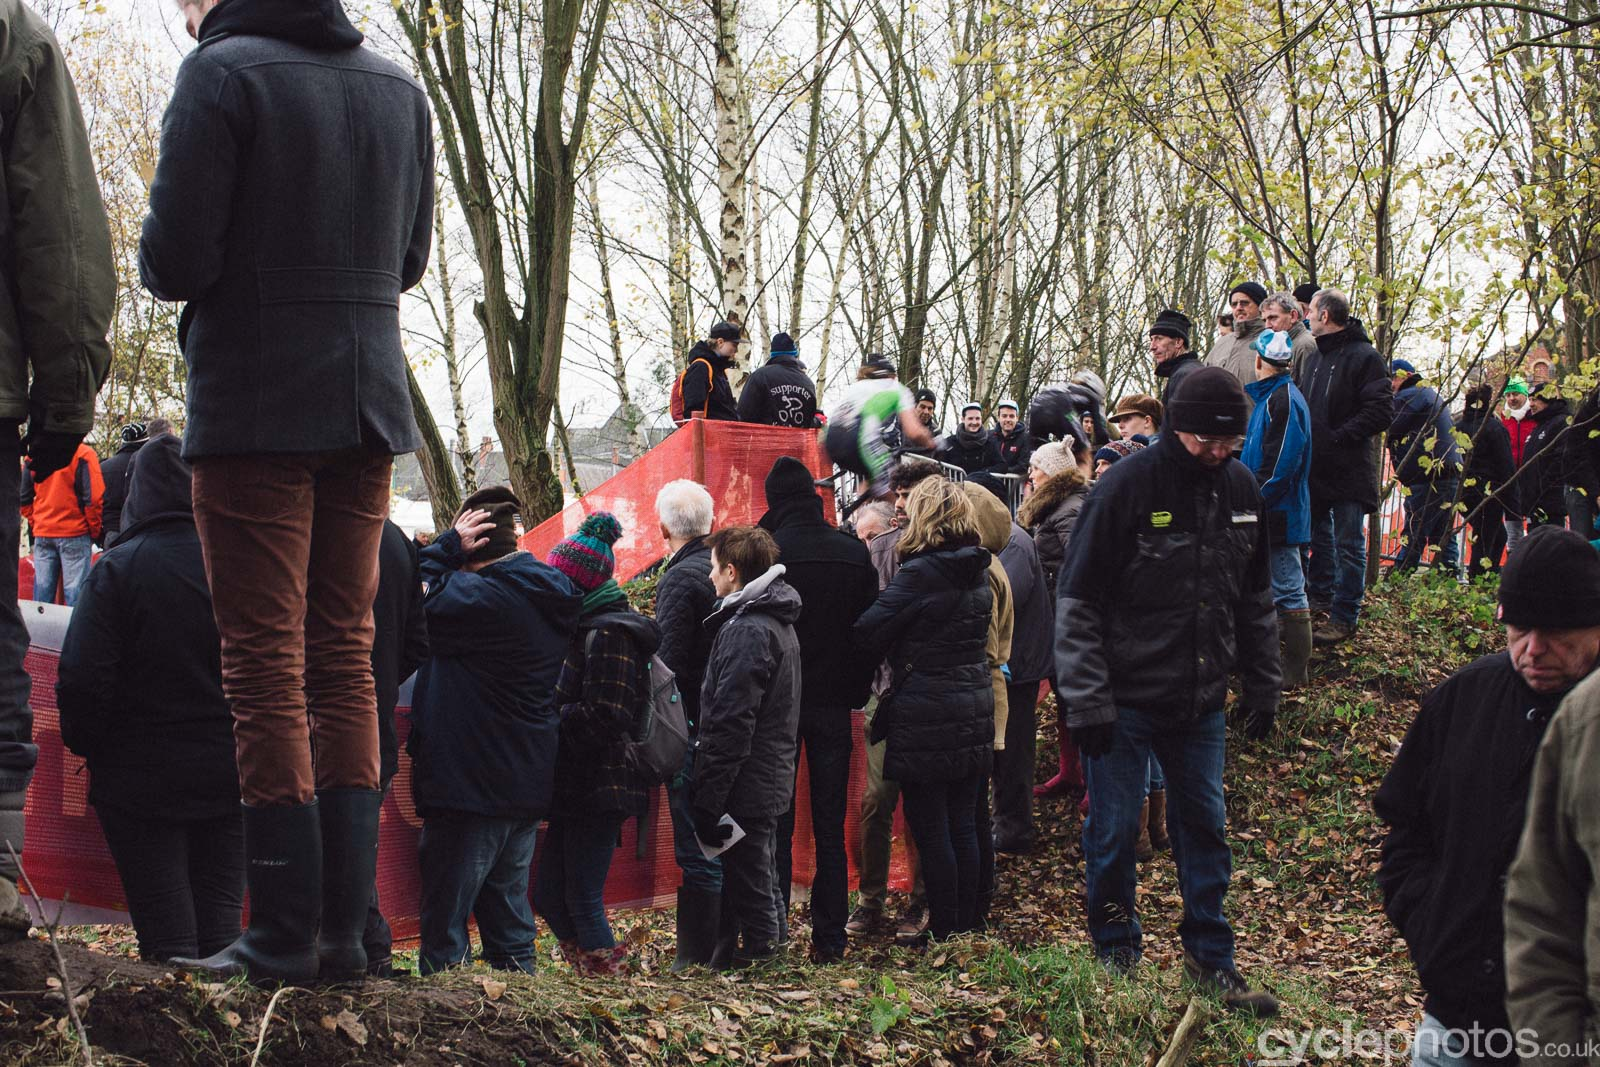 2015-cyclephotos-cyclocross-essen-141619-crowd